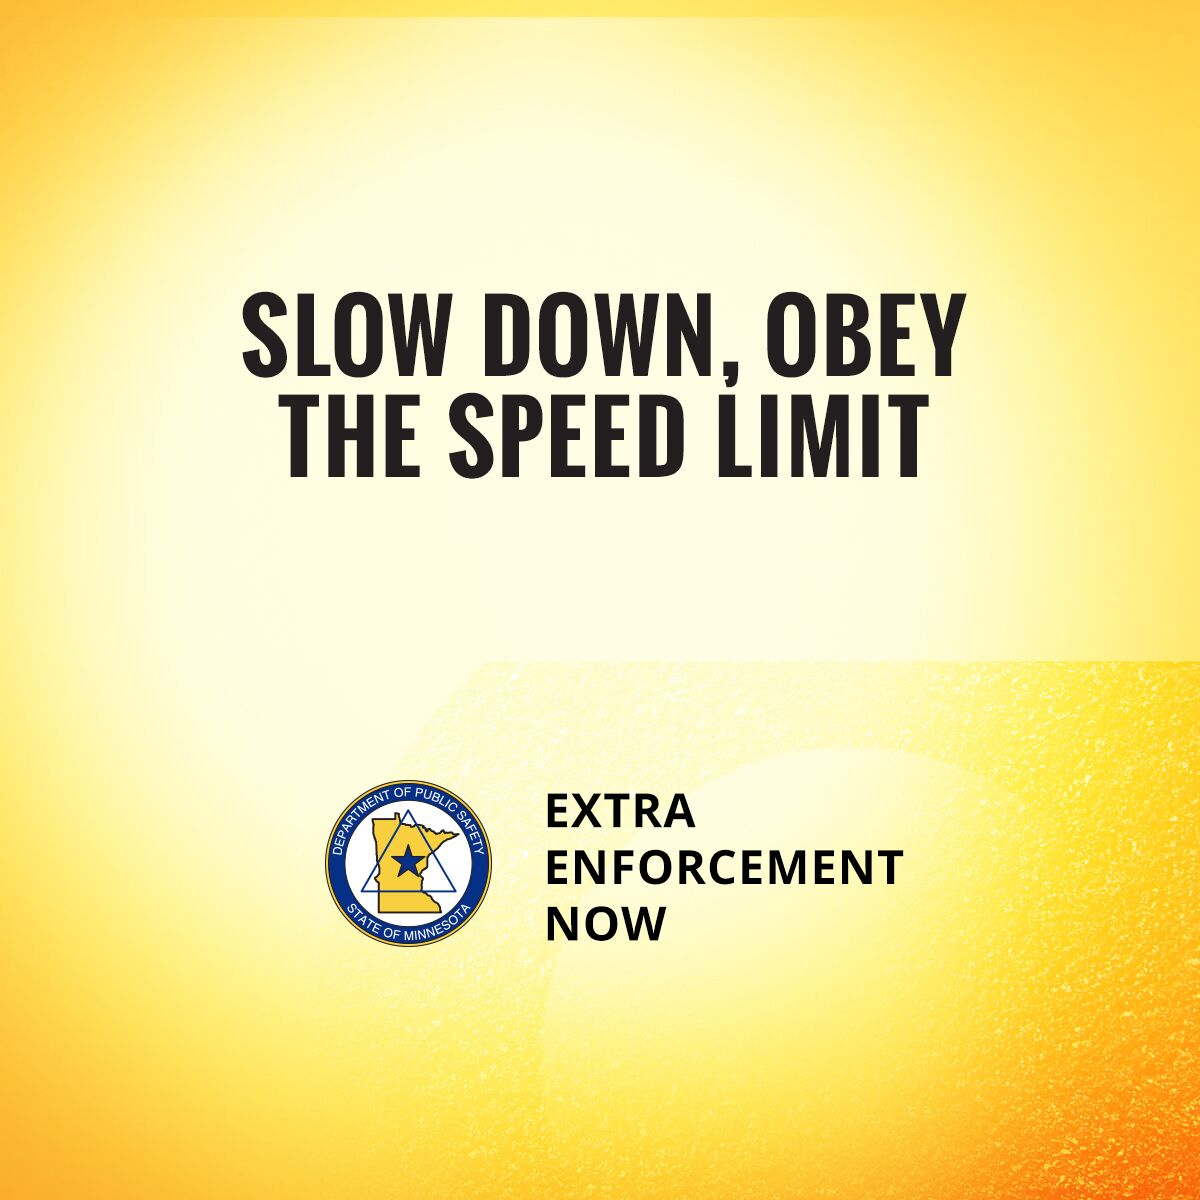 slow down, obey the speed limit